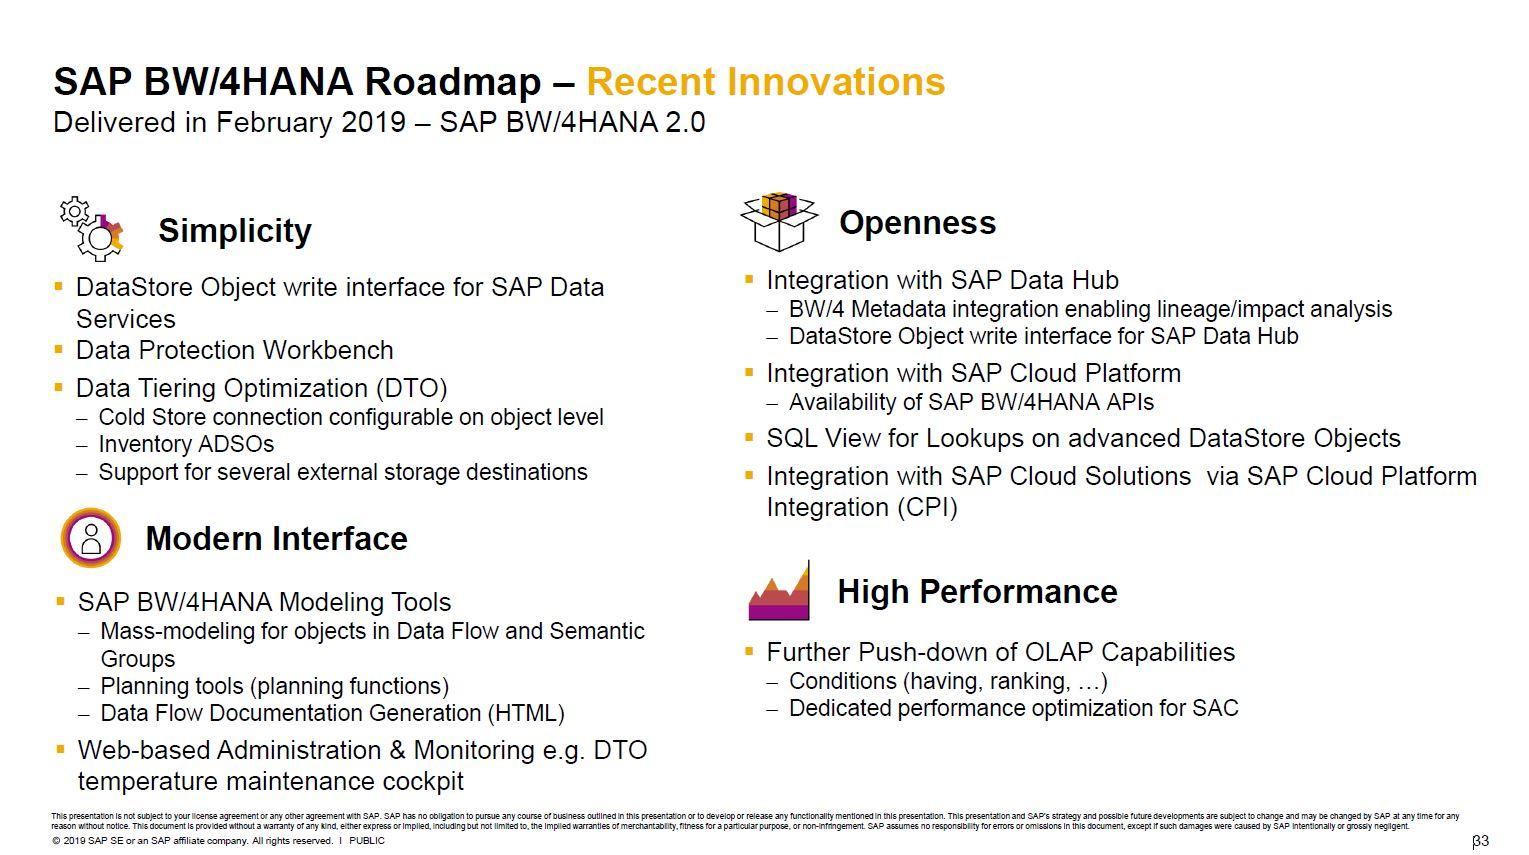 SAP BW/4HANA Roadmap